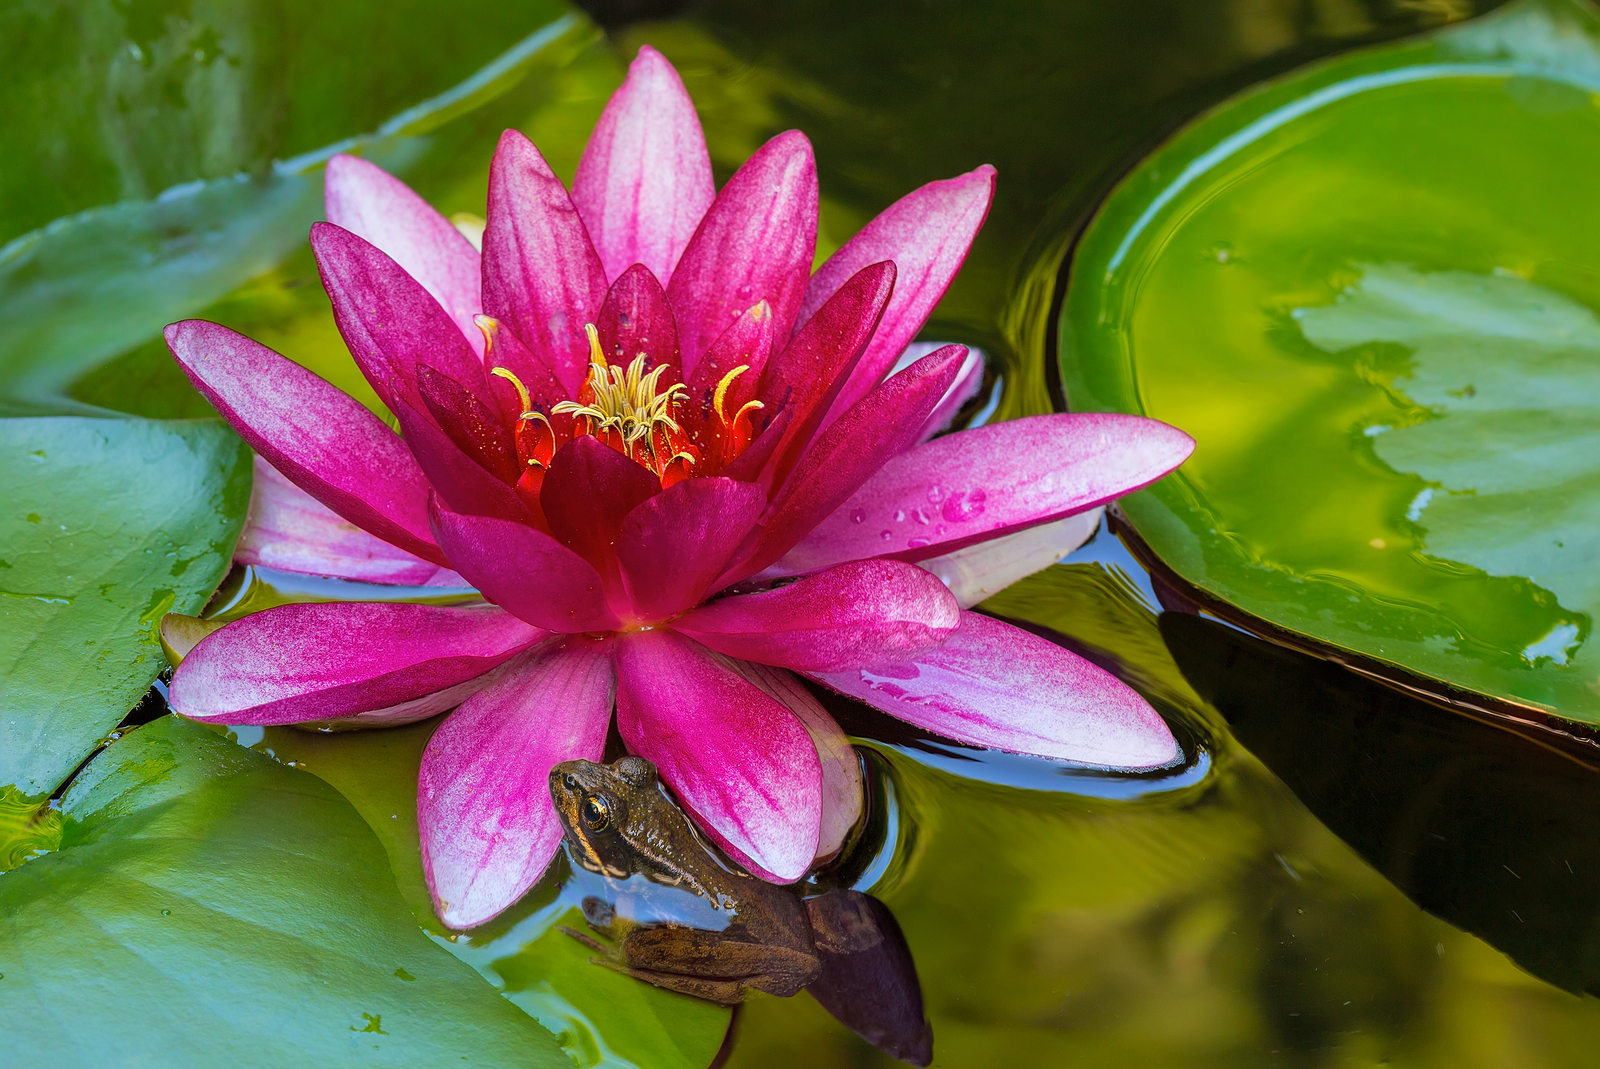 Pacific Tree Chorus Frog by Pink Water Lily Flower in Garden Backyard Pond